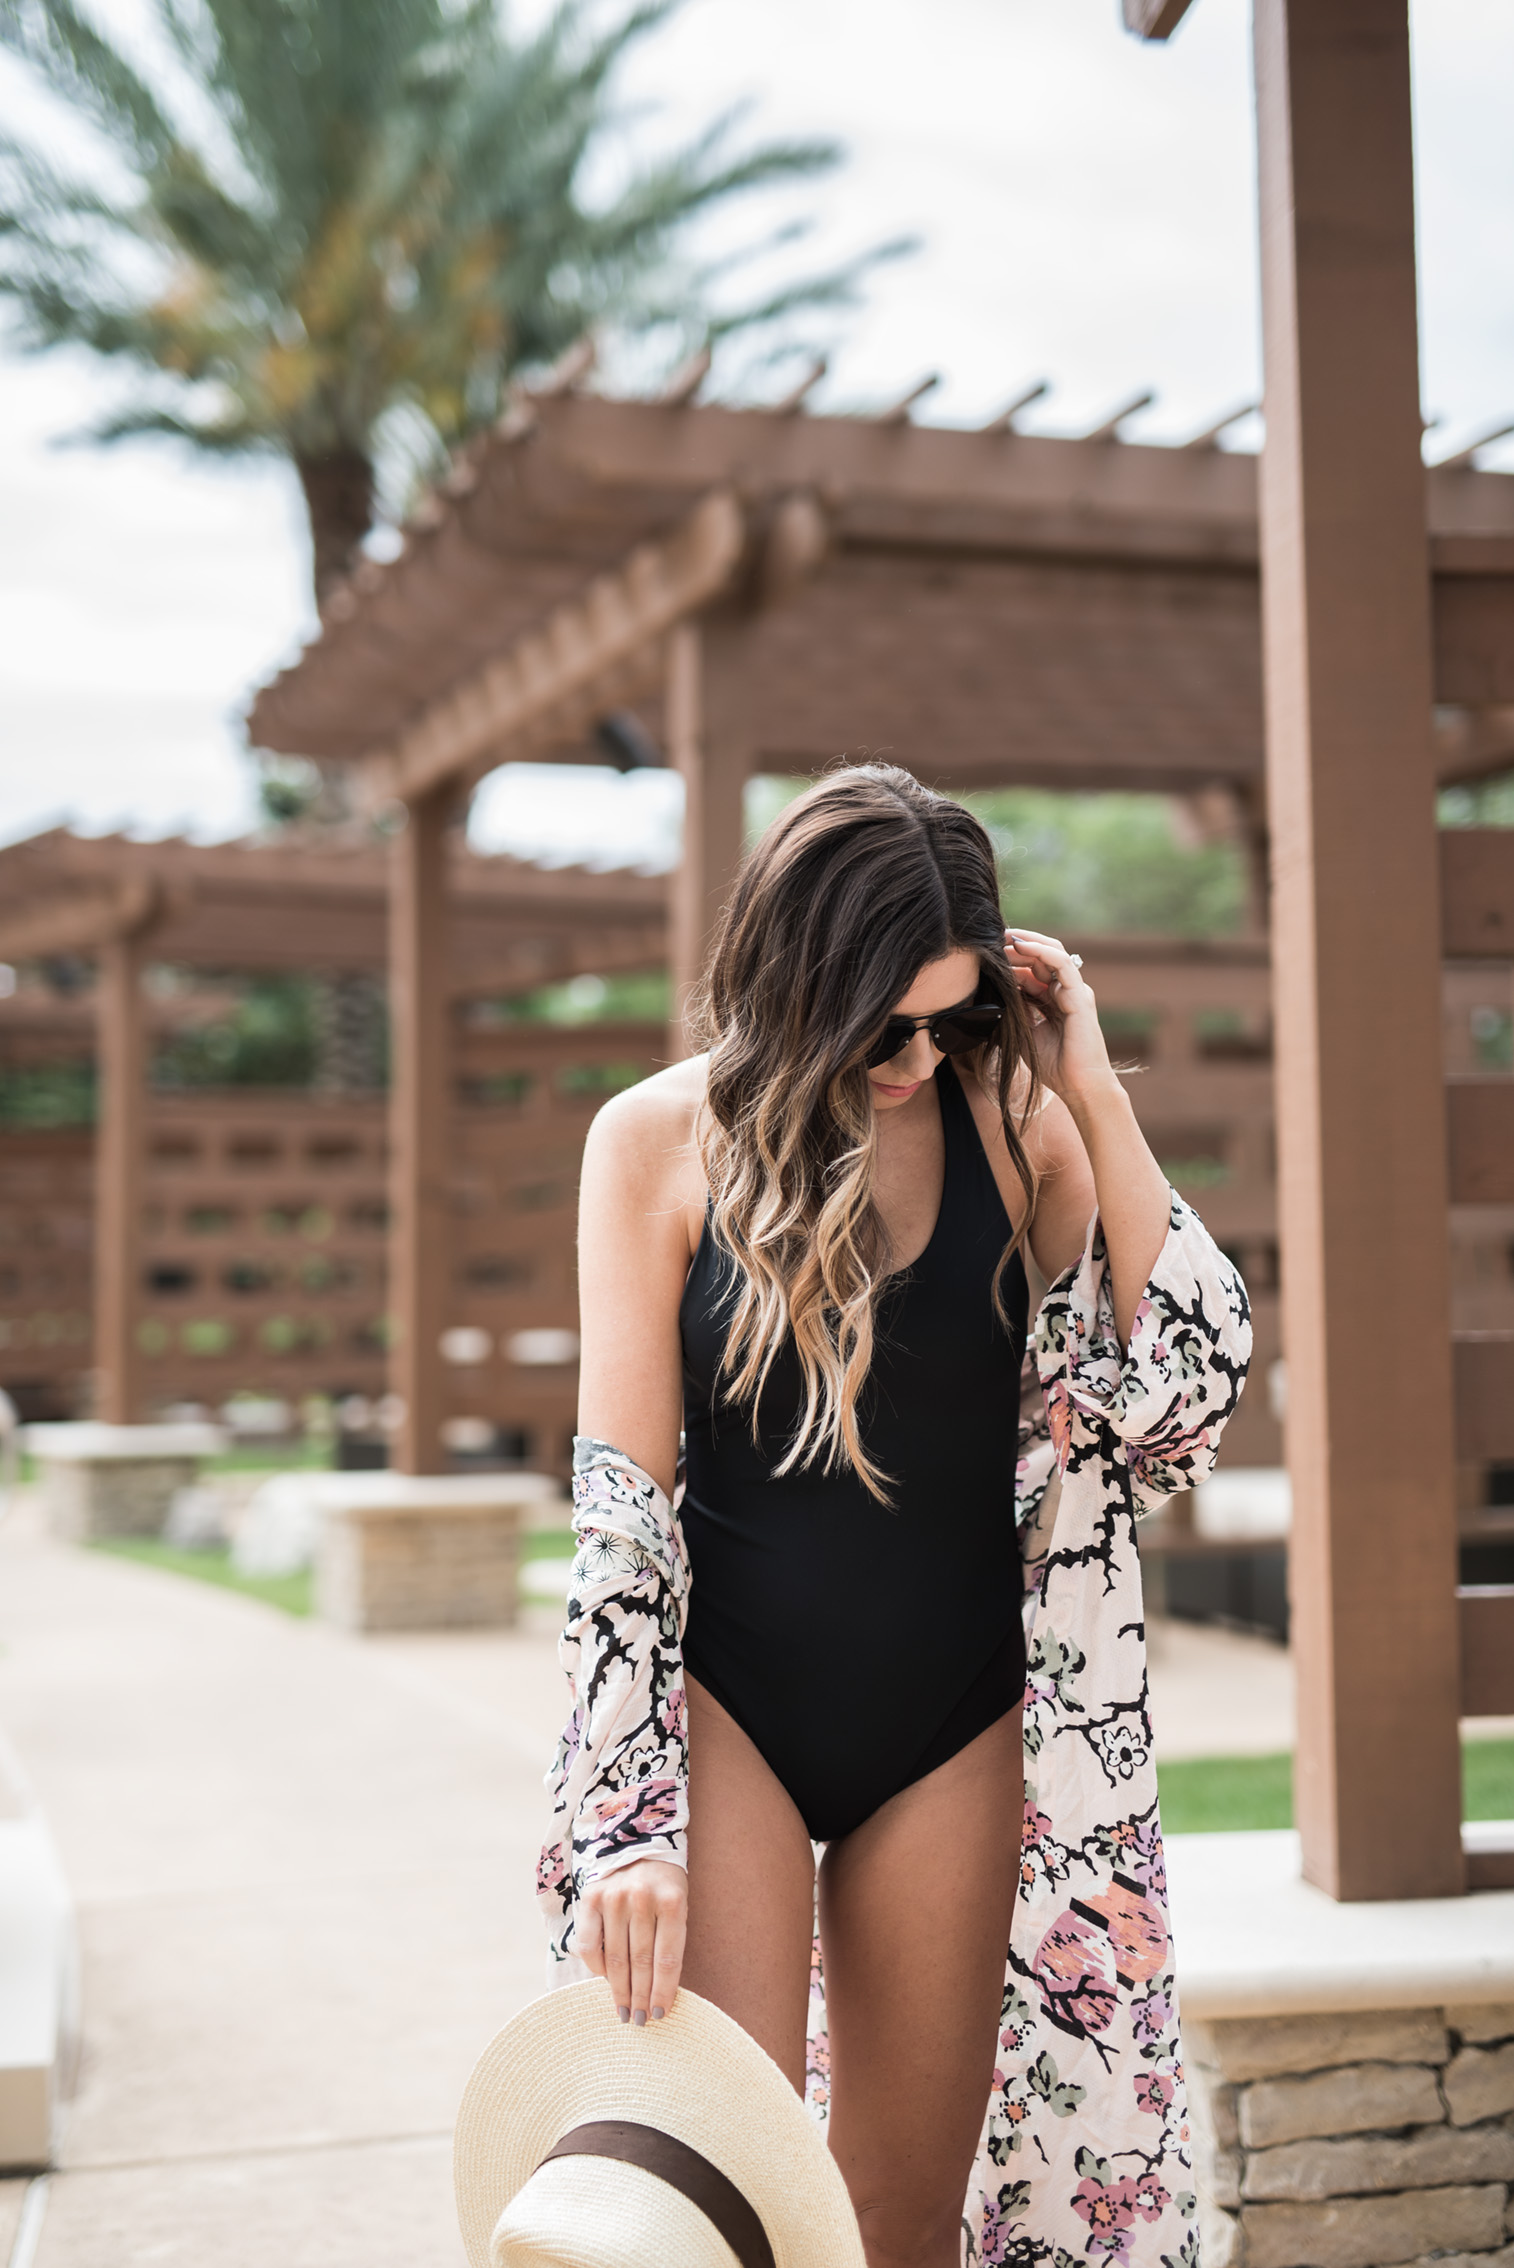 Tiffany Jais Houston fashion and lifestyle blogger   Black one piece suit, floral cover up, pool outfit ides, free people,